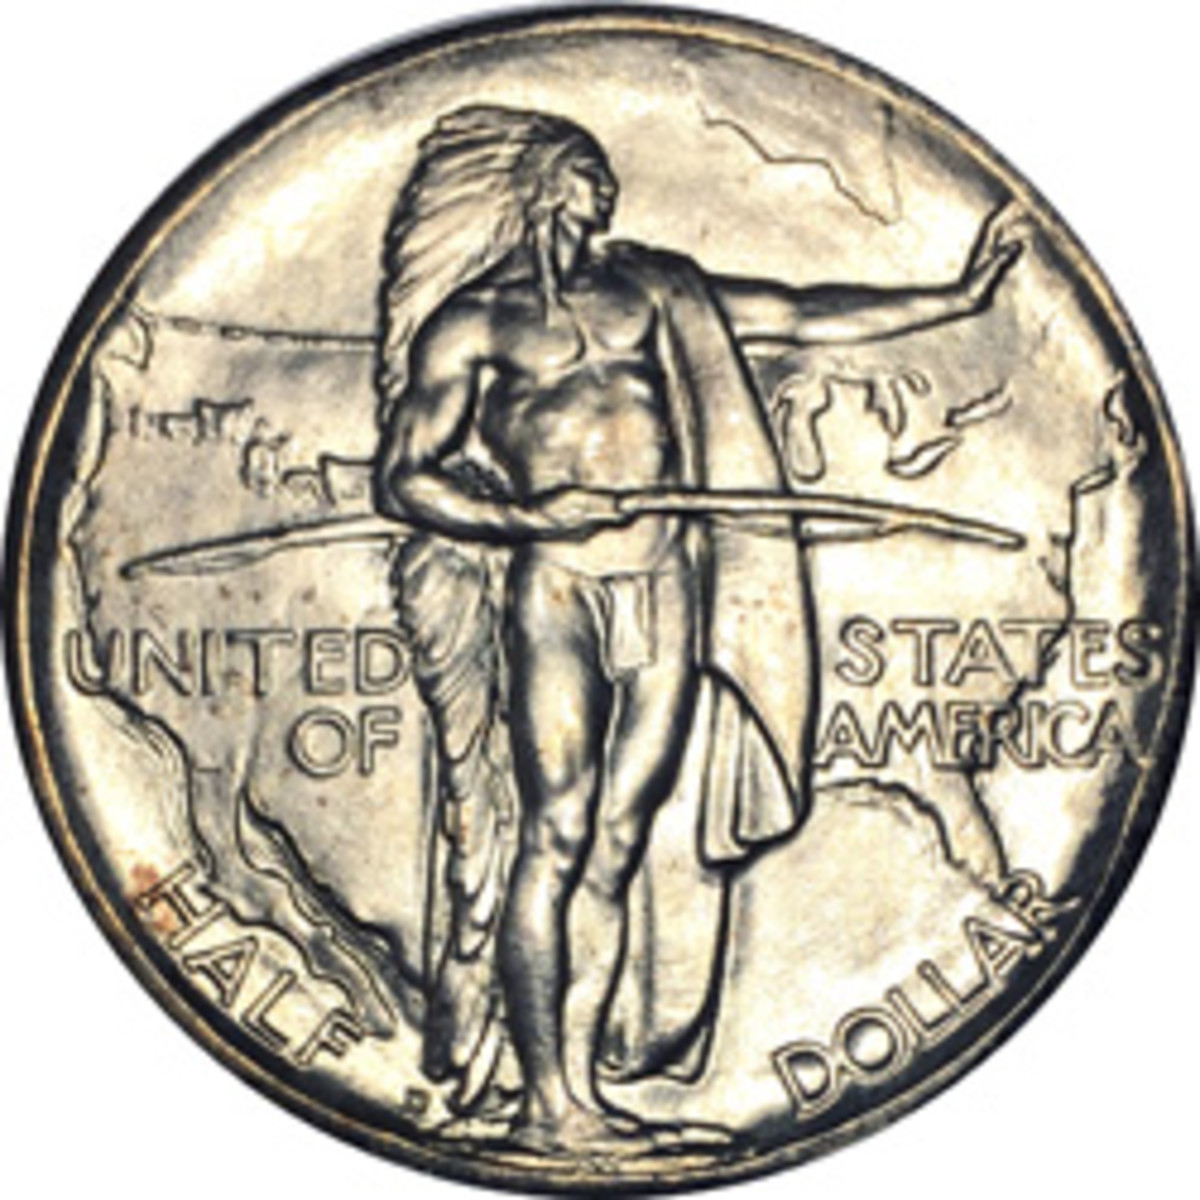 This 1937-D Oregon Trail commemorative half dollar that grades MS66 on the Sheldon scale is MS92 on the Guth 100 Point Coin Grading ScaleSM.